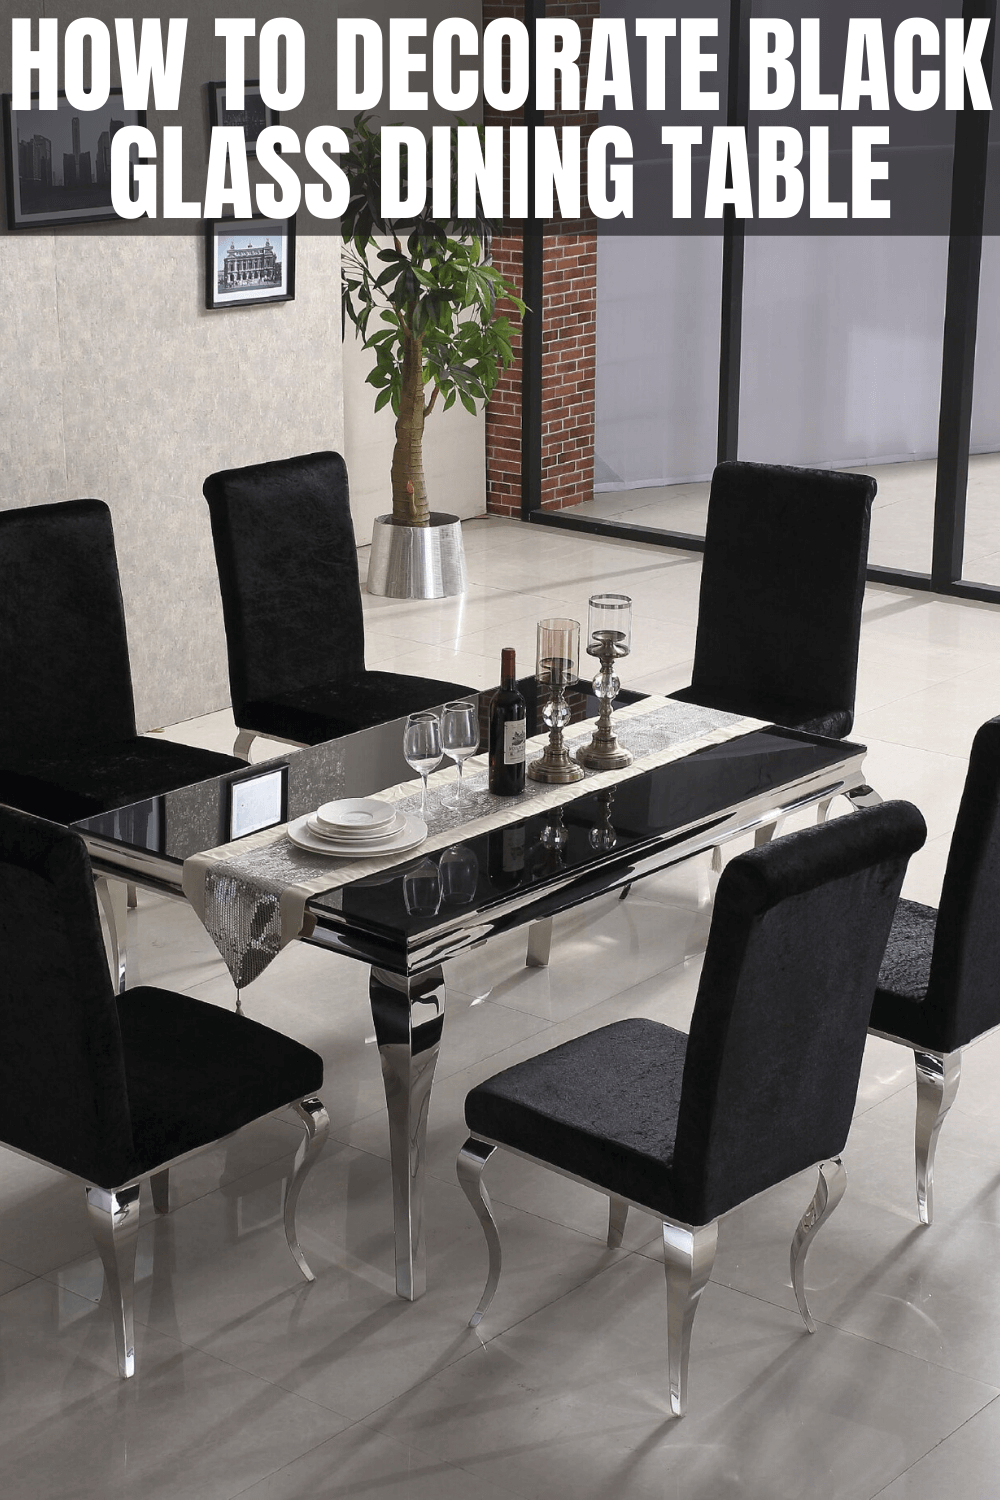 HOW TO DECORATE BLACK GLASS DINING TABLE